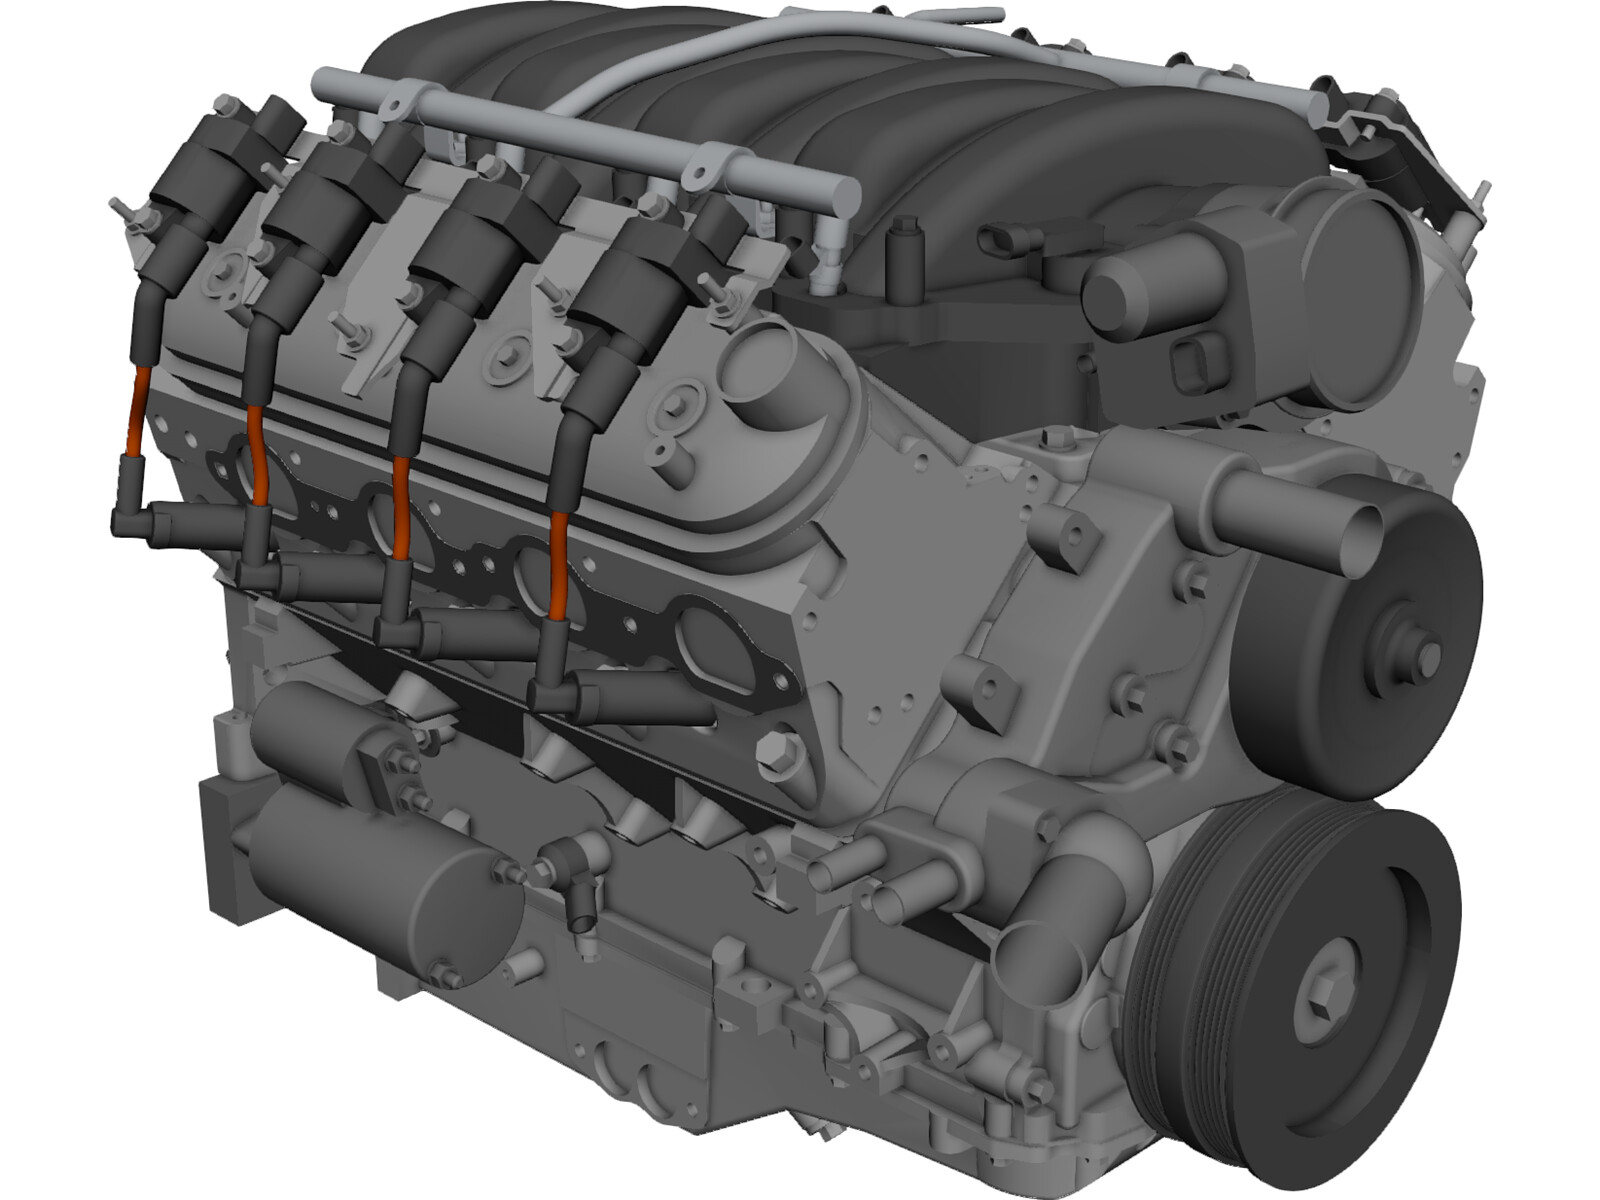 GM LS3 Engine 3D Model